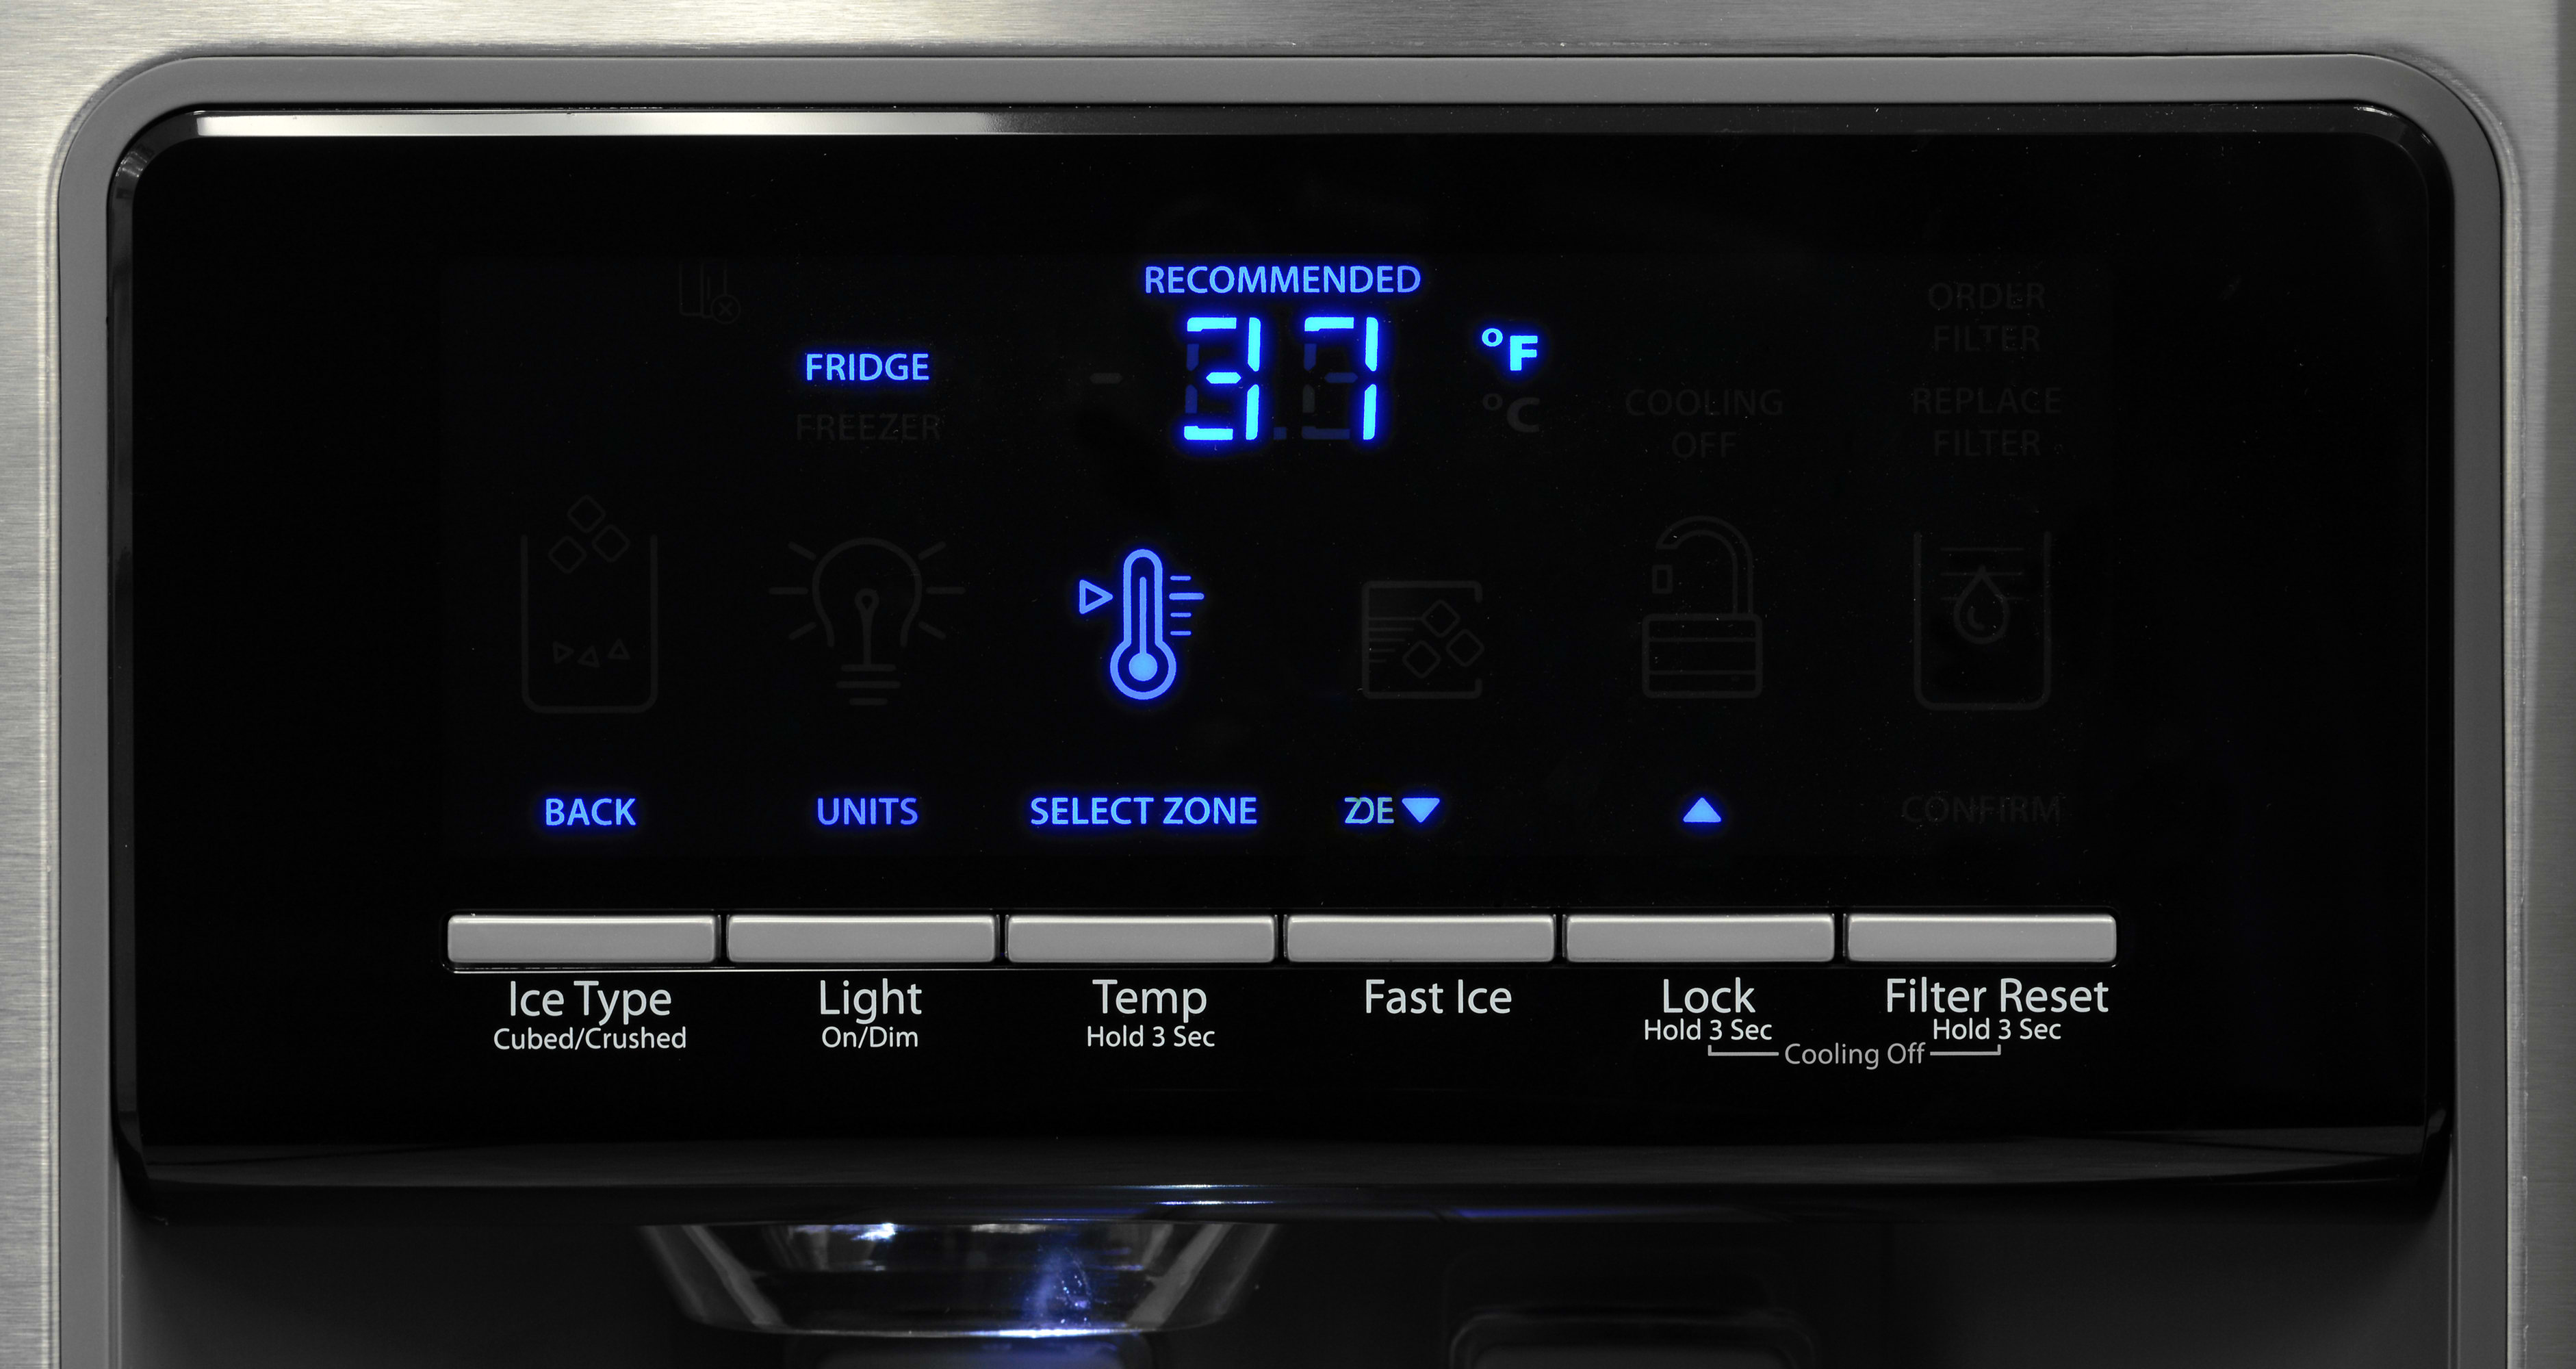 The Whirlpool WRS571CIDM's frequently used features are easy to access, while other options—adjusting the temperature, for instance—take a little more effort.